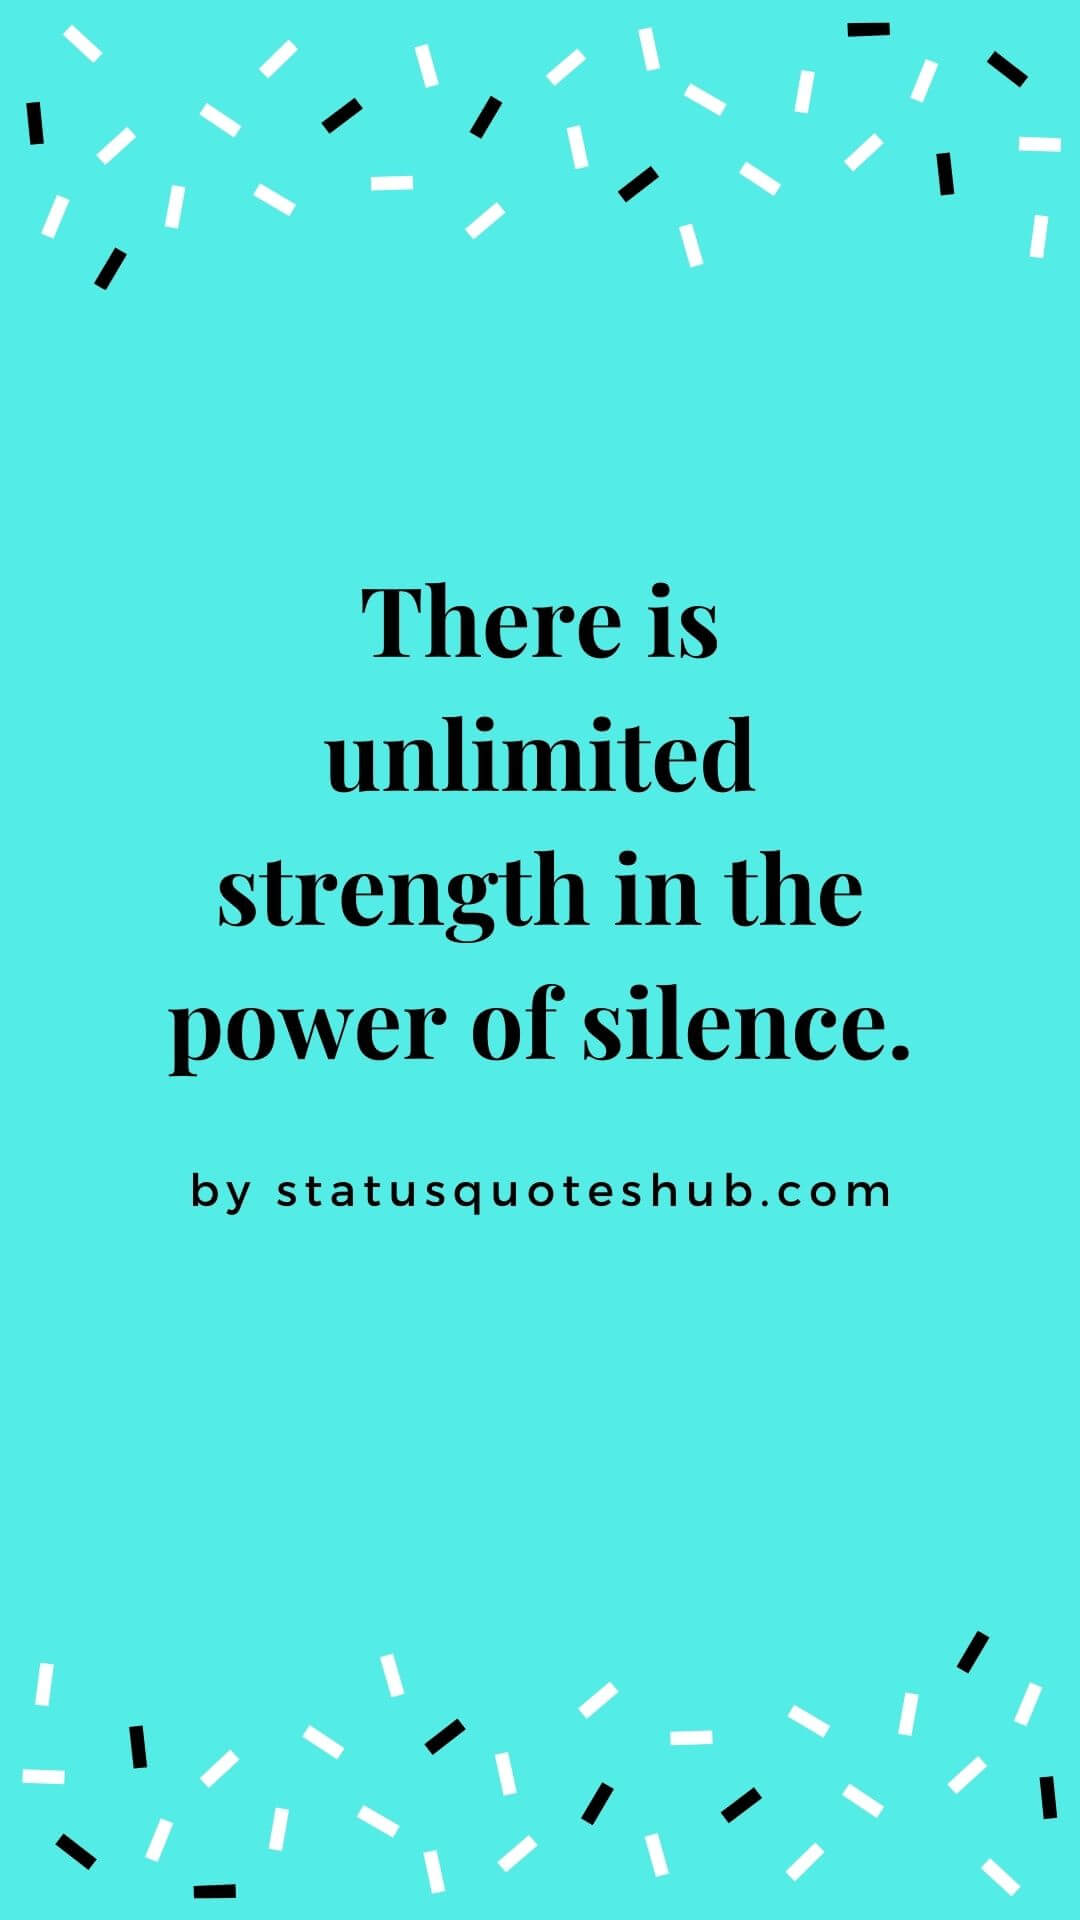 Silence status and quotes in relationship